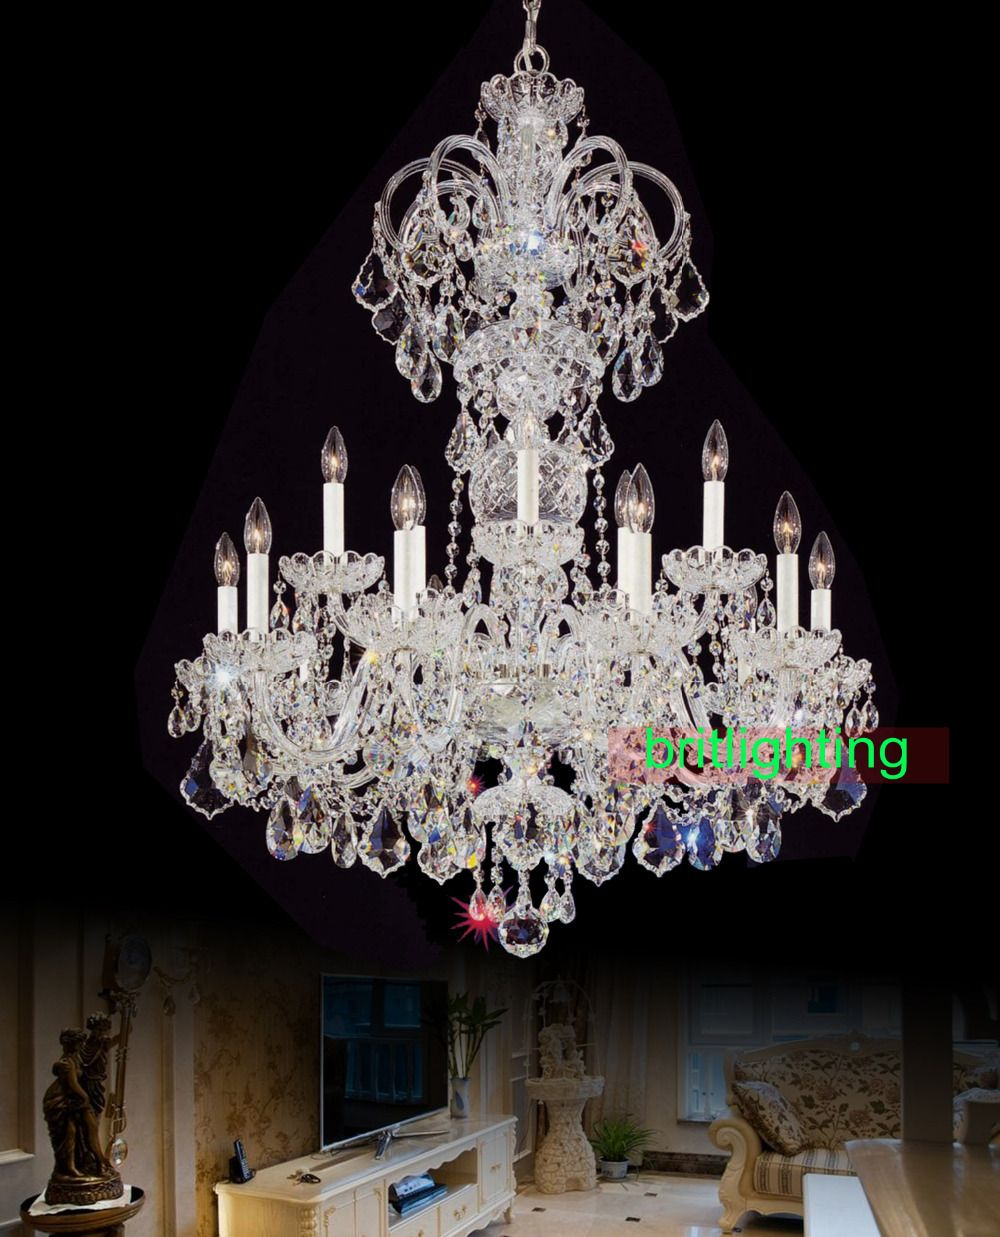 Reviews modern big chandelier lamps european candle chandeliers home reviews modern big chandelier lamps european candle chandeliers home lighting decoration bohemian crystal chandelier with crystals aloadofball Image collections